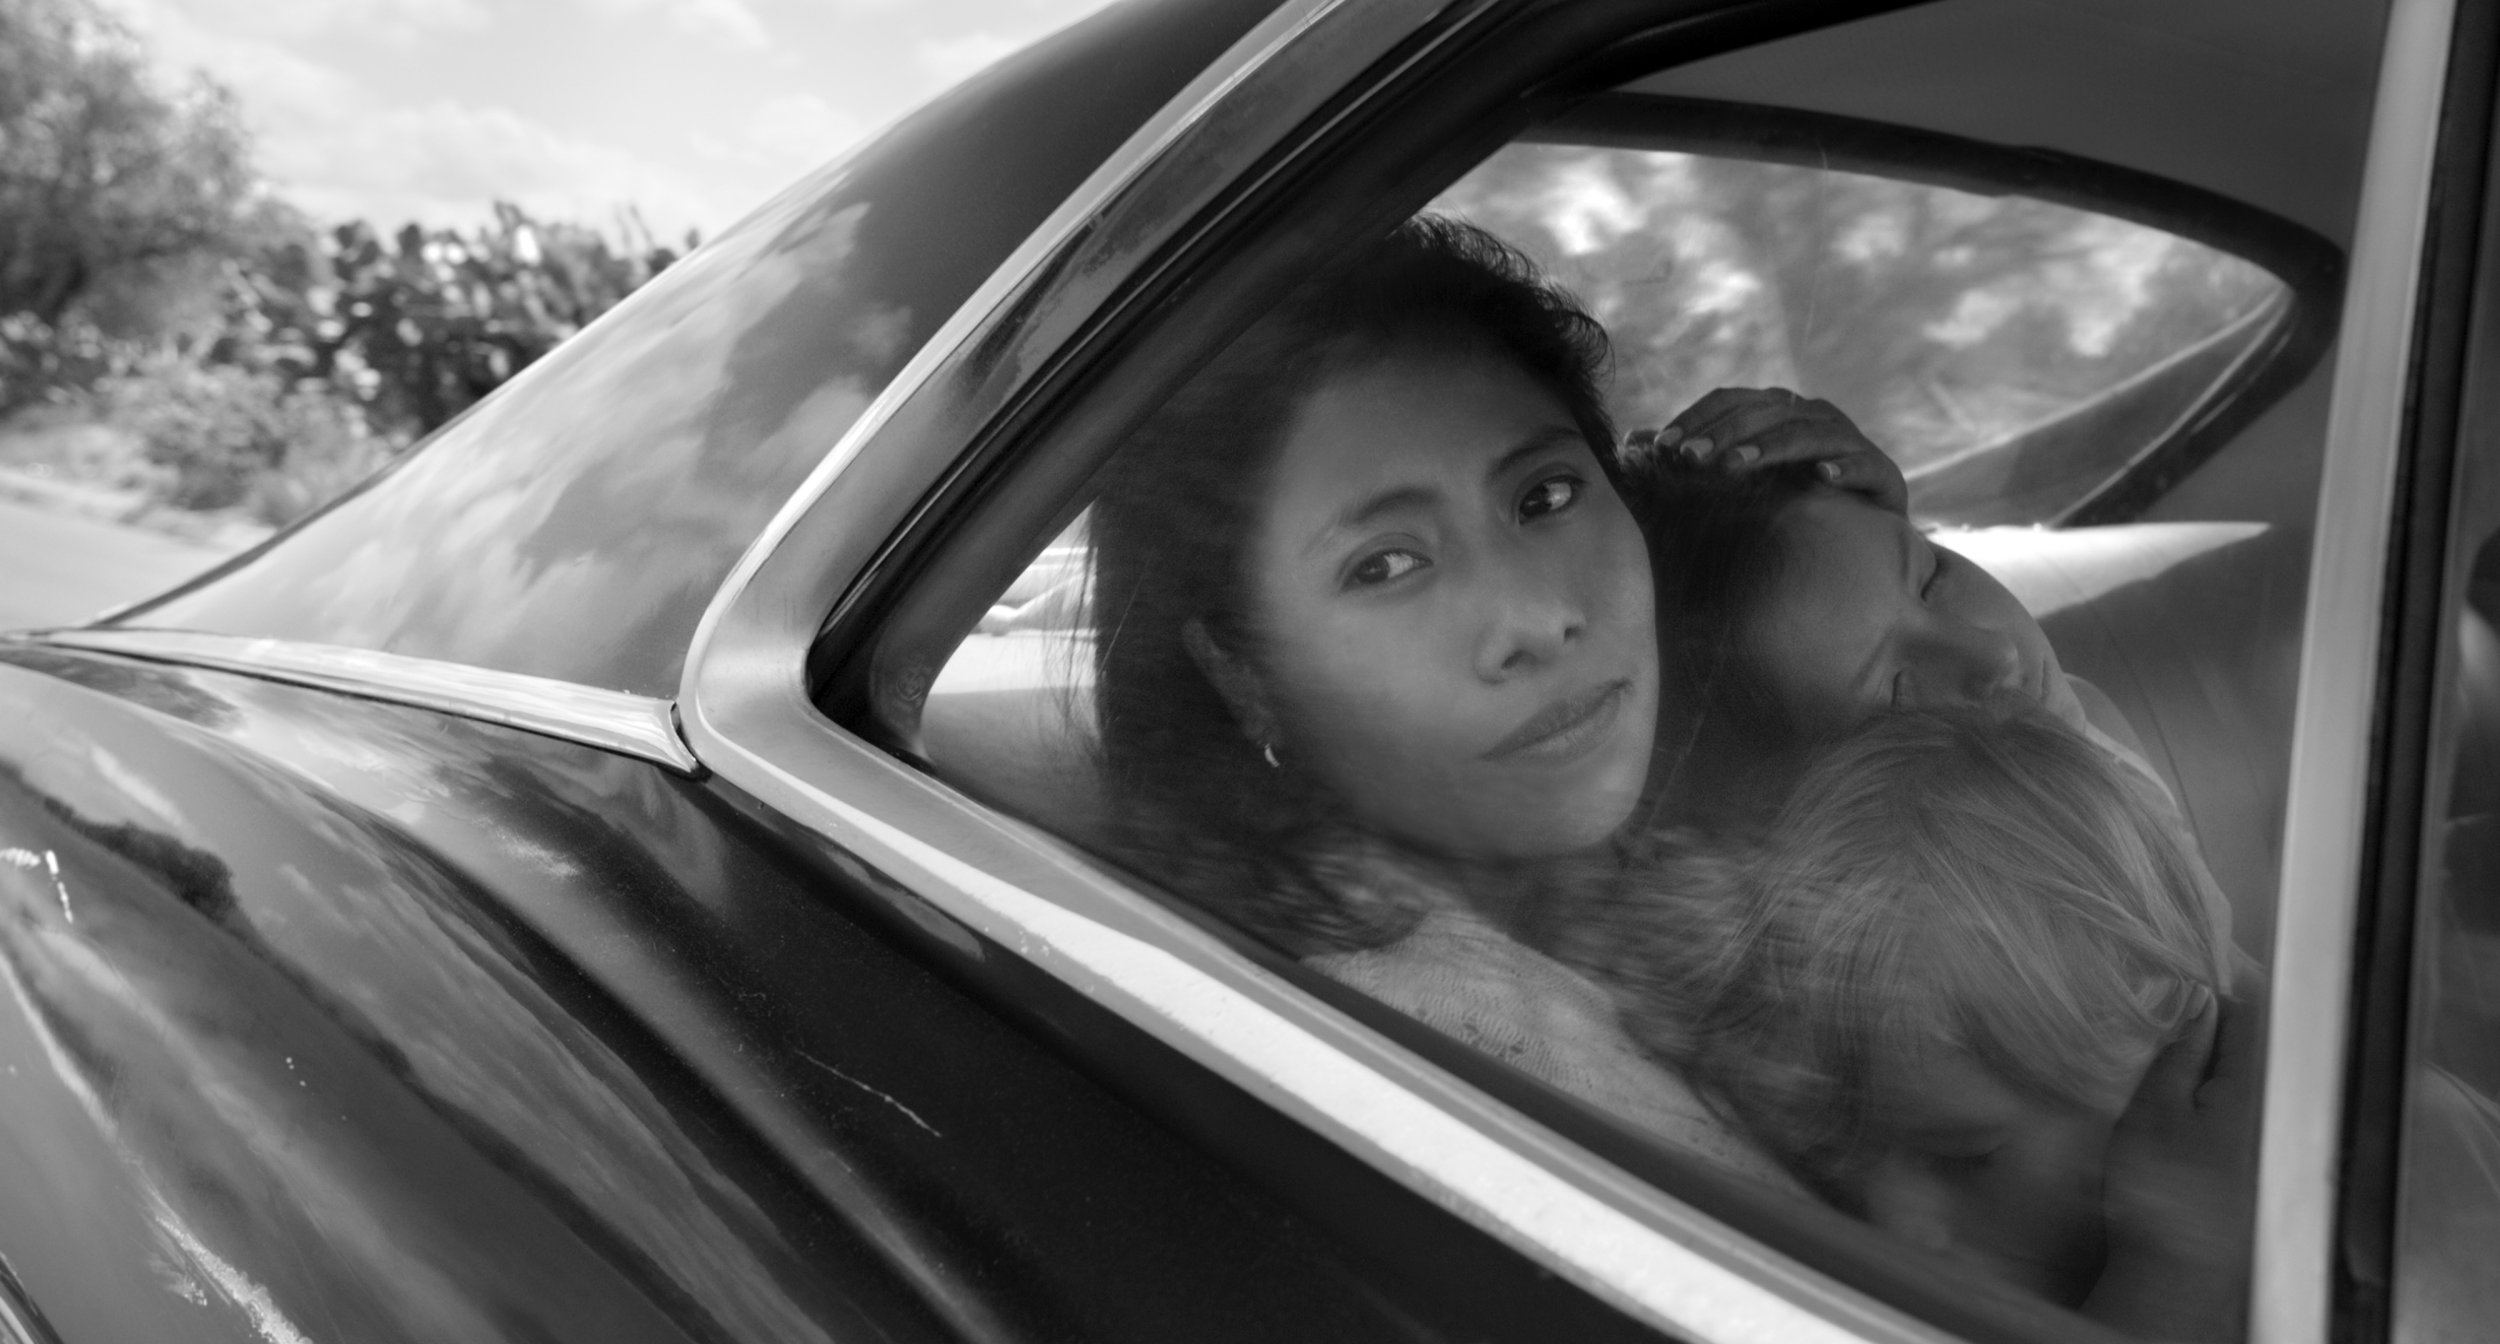 """This image released by Netflix shows Yalitza Aparicio in a scene from the film """"Roma,"""" by filmmaker Alfonso Cuaron. Aparicio portrays Cleo, a domestic worker who works for a woman whose husband abandons her and their four children. (Alfonso Cuar??n/Netflix via AP)"""